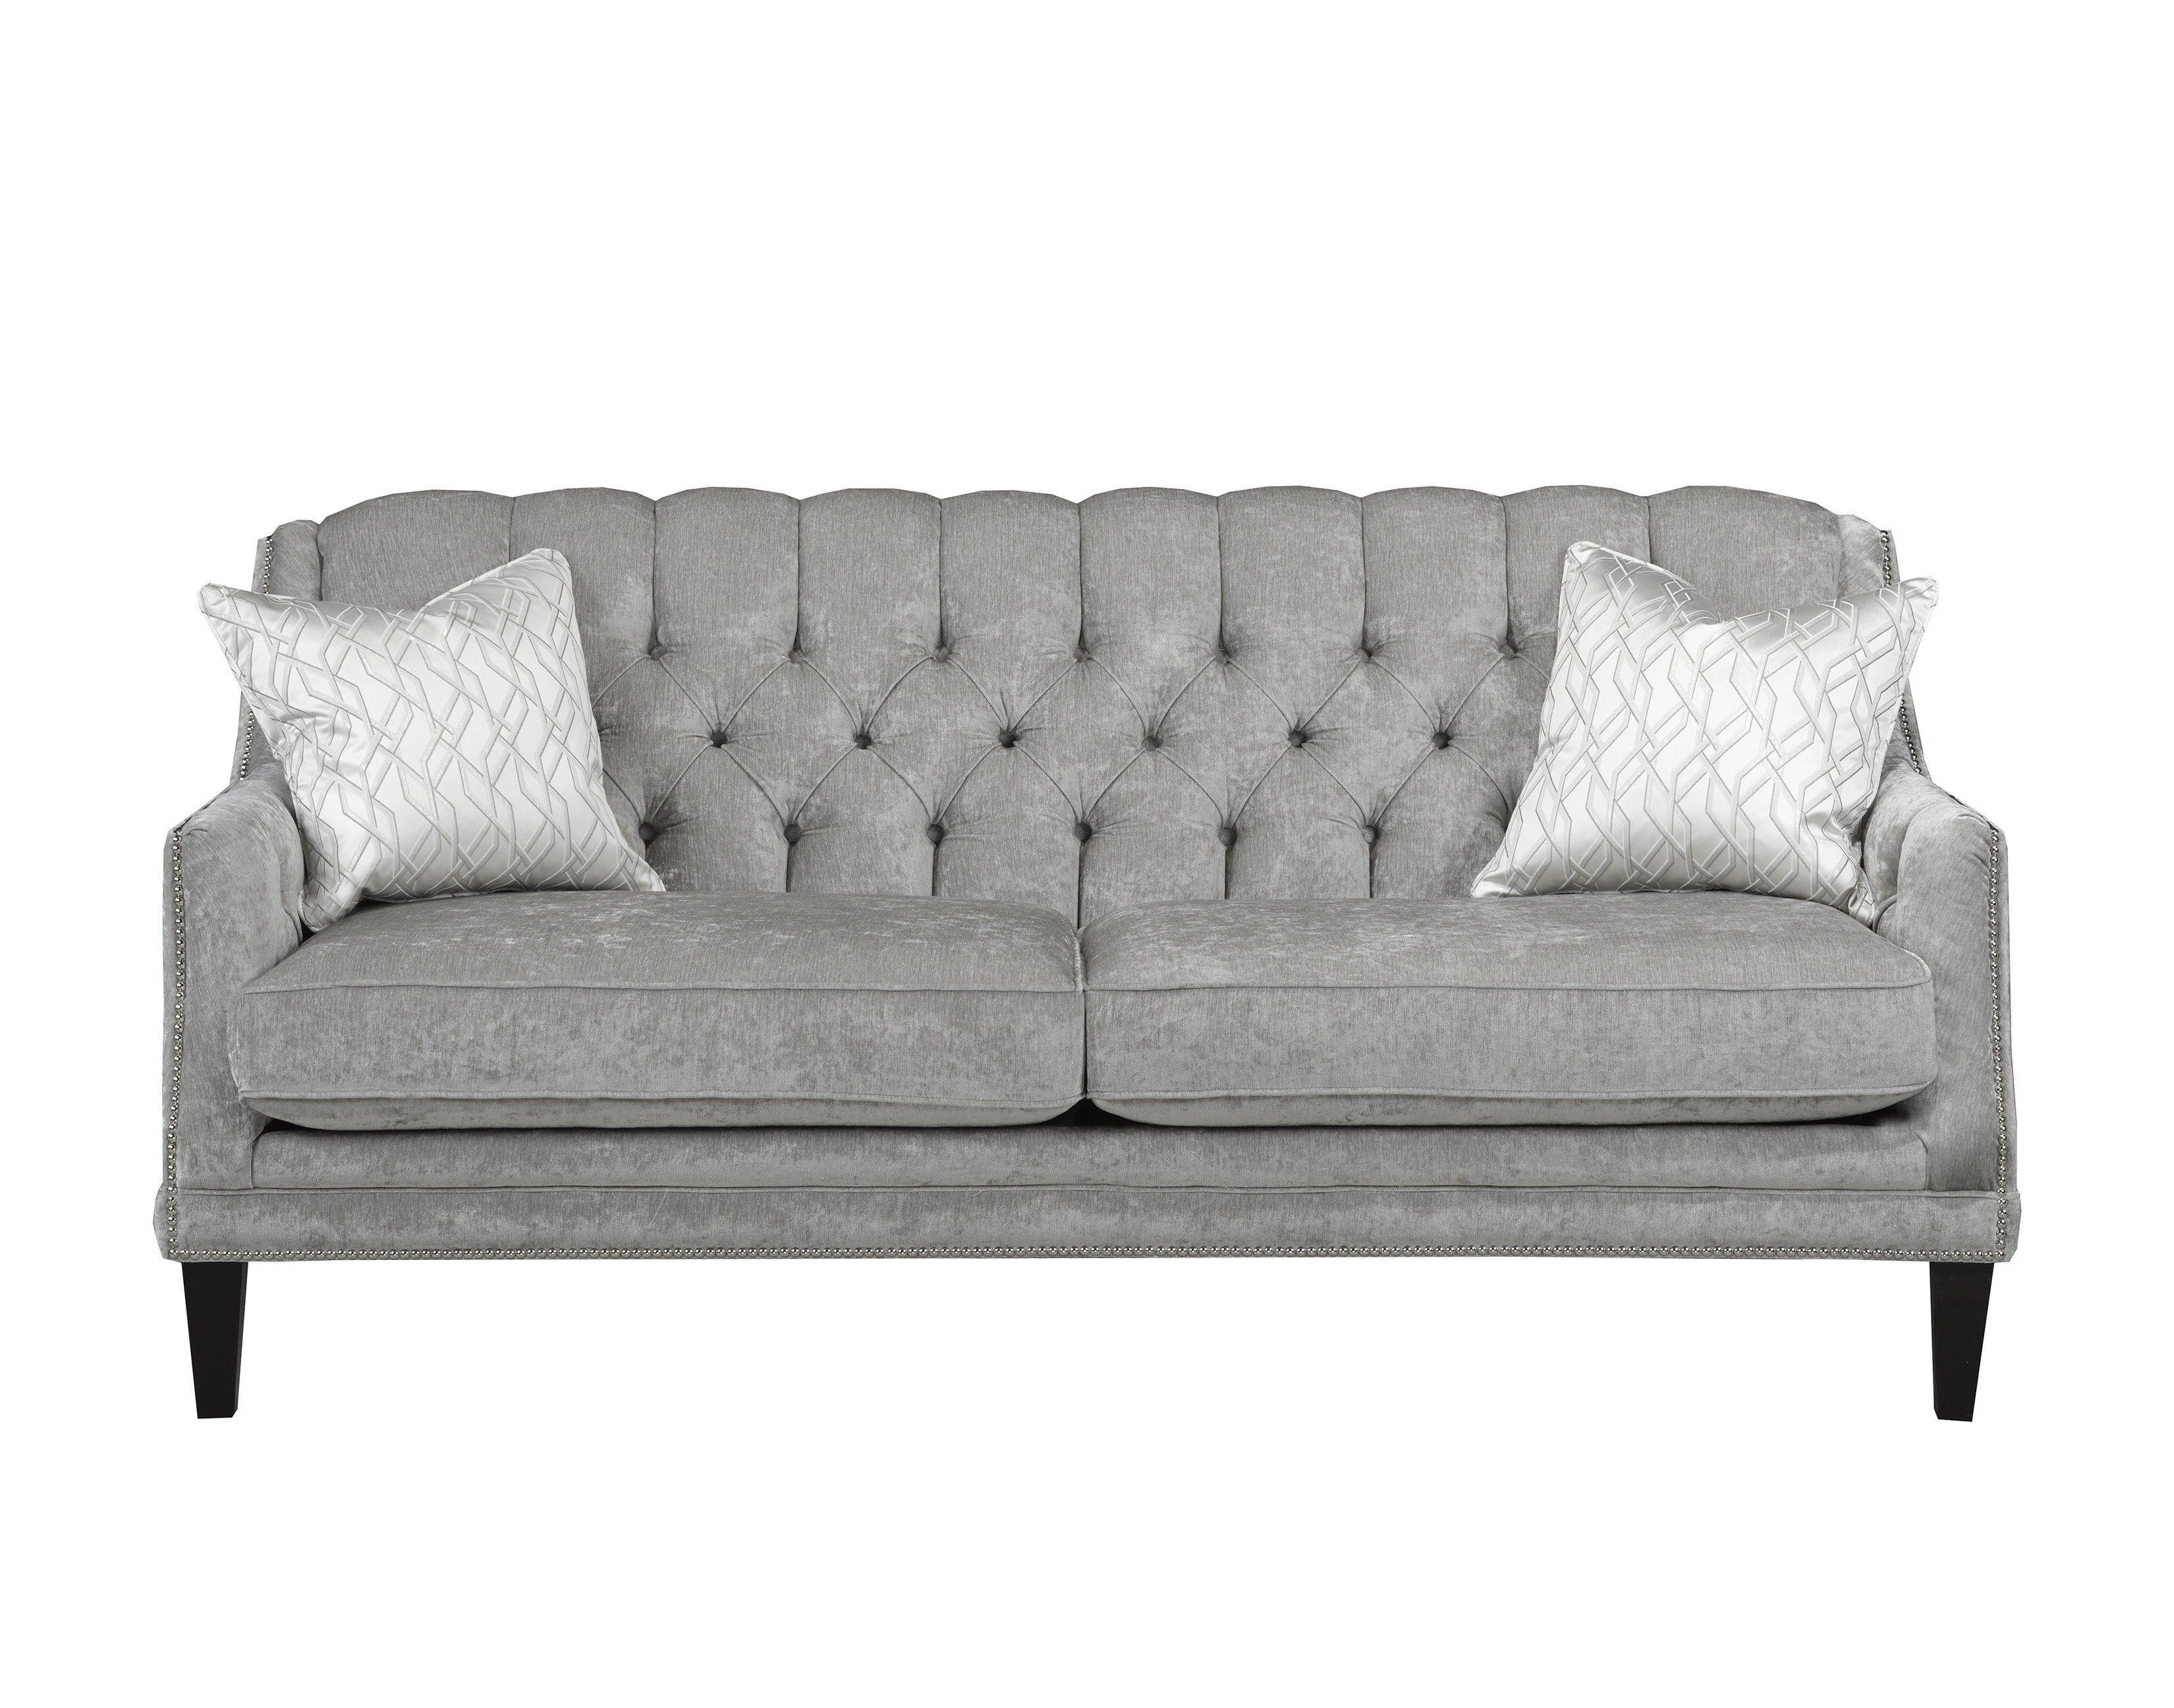 silver urn vase of gray and white living room inspirational living room silver vase pertaining to gray and white living room best of furniture tufted loveseat inspirational transitional tufted and of gray